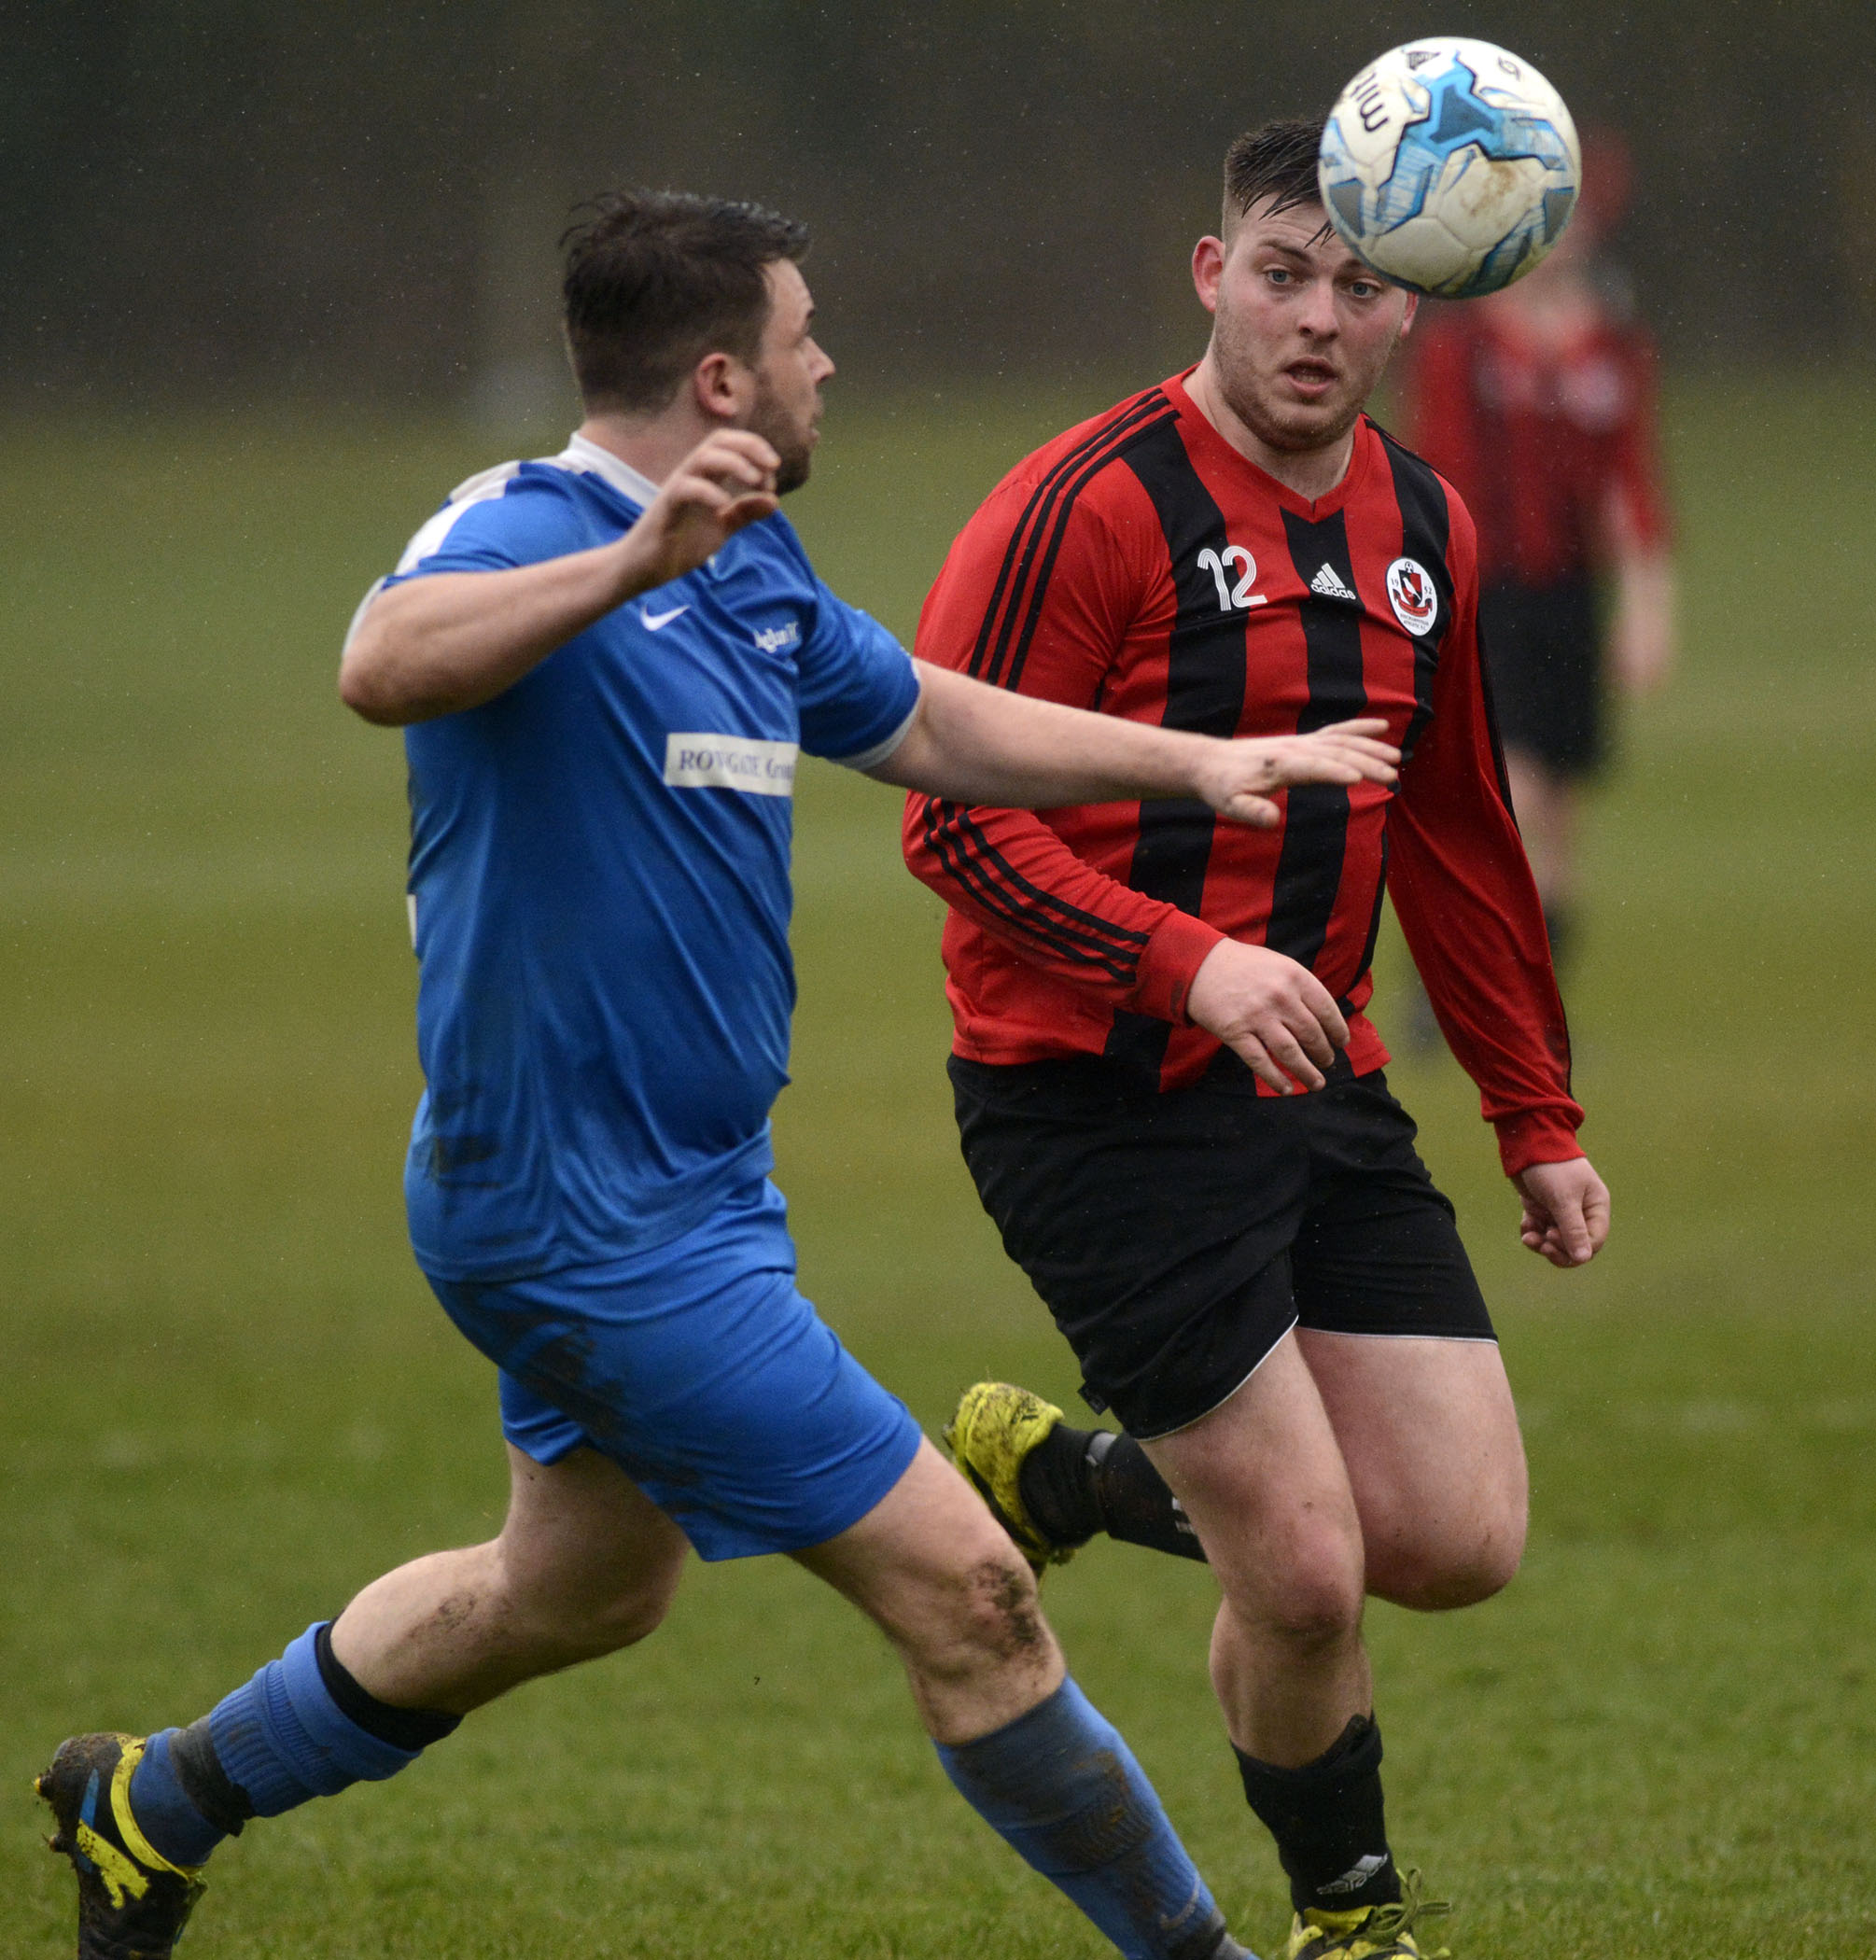 Finchampstead Athletic Reserves' (red/black) Dan Marles goes for the ball   Picture by Paul Johns 180416